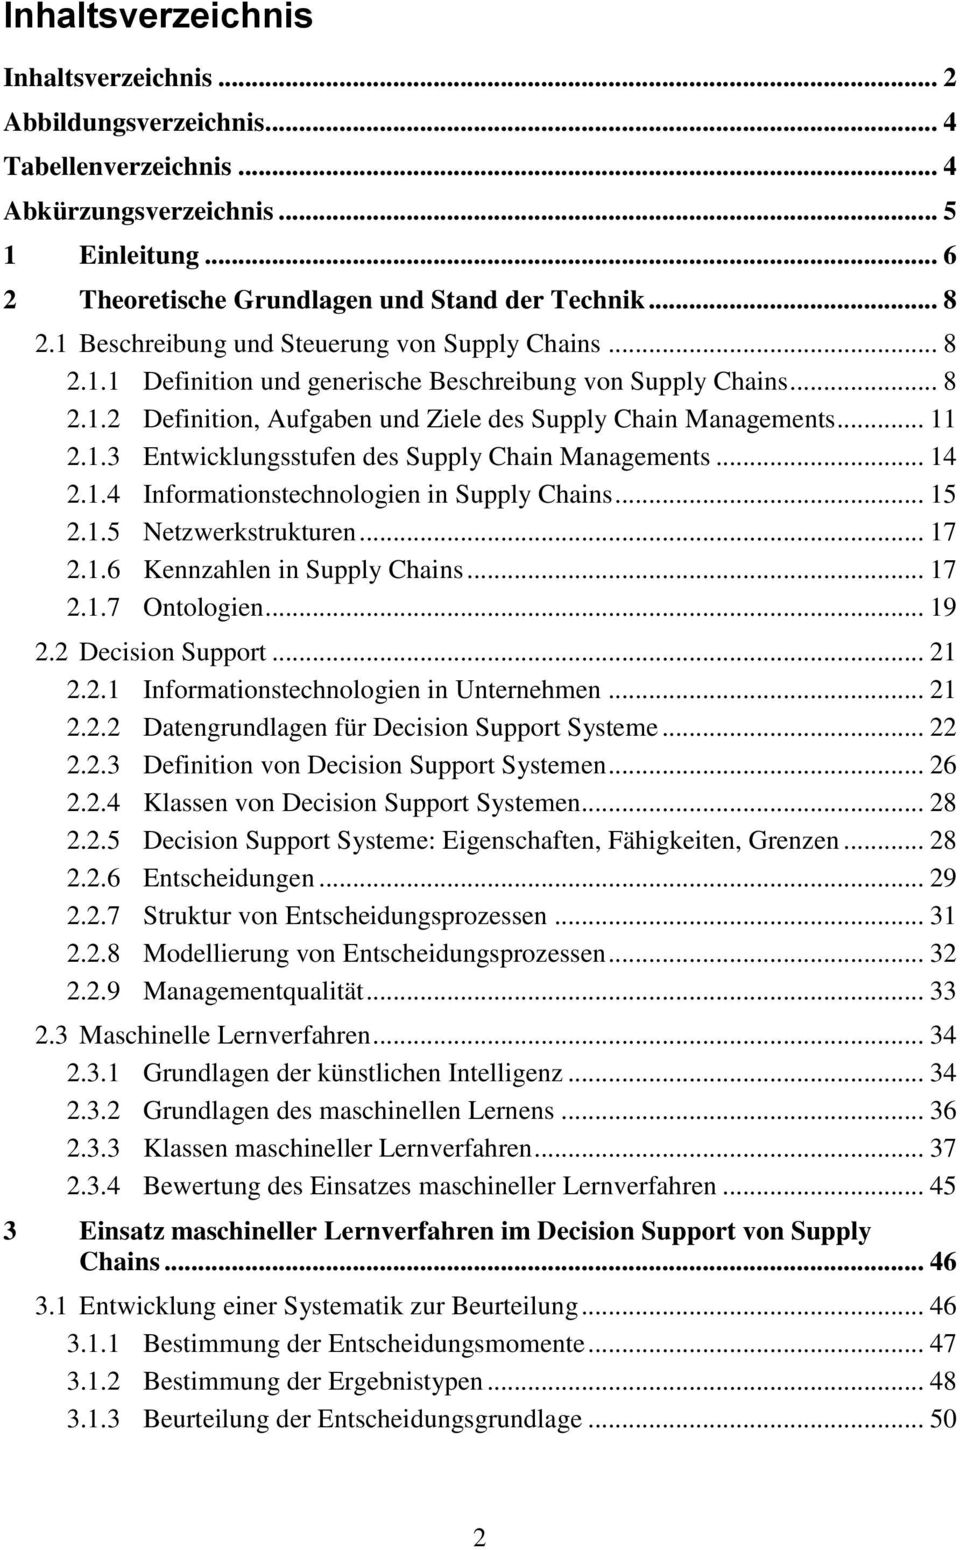 .. 14 2.1.4 Informationstechnologien in Supply Chains... 15 2.1.5 Netzwerkstrukturen... 17 2.1.6 Kennzahlen in Supply Chains... 17 2.1.7 Ontologien... 19 2.2 Decision Support... 21 2.2.1 Informationstechnologien in Unternehmen.